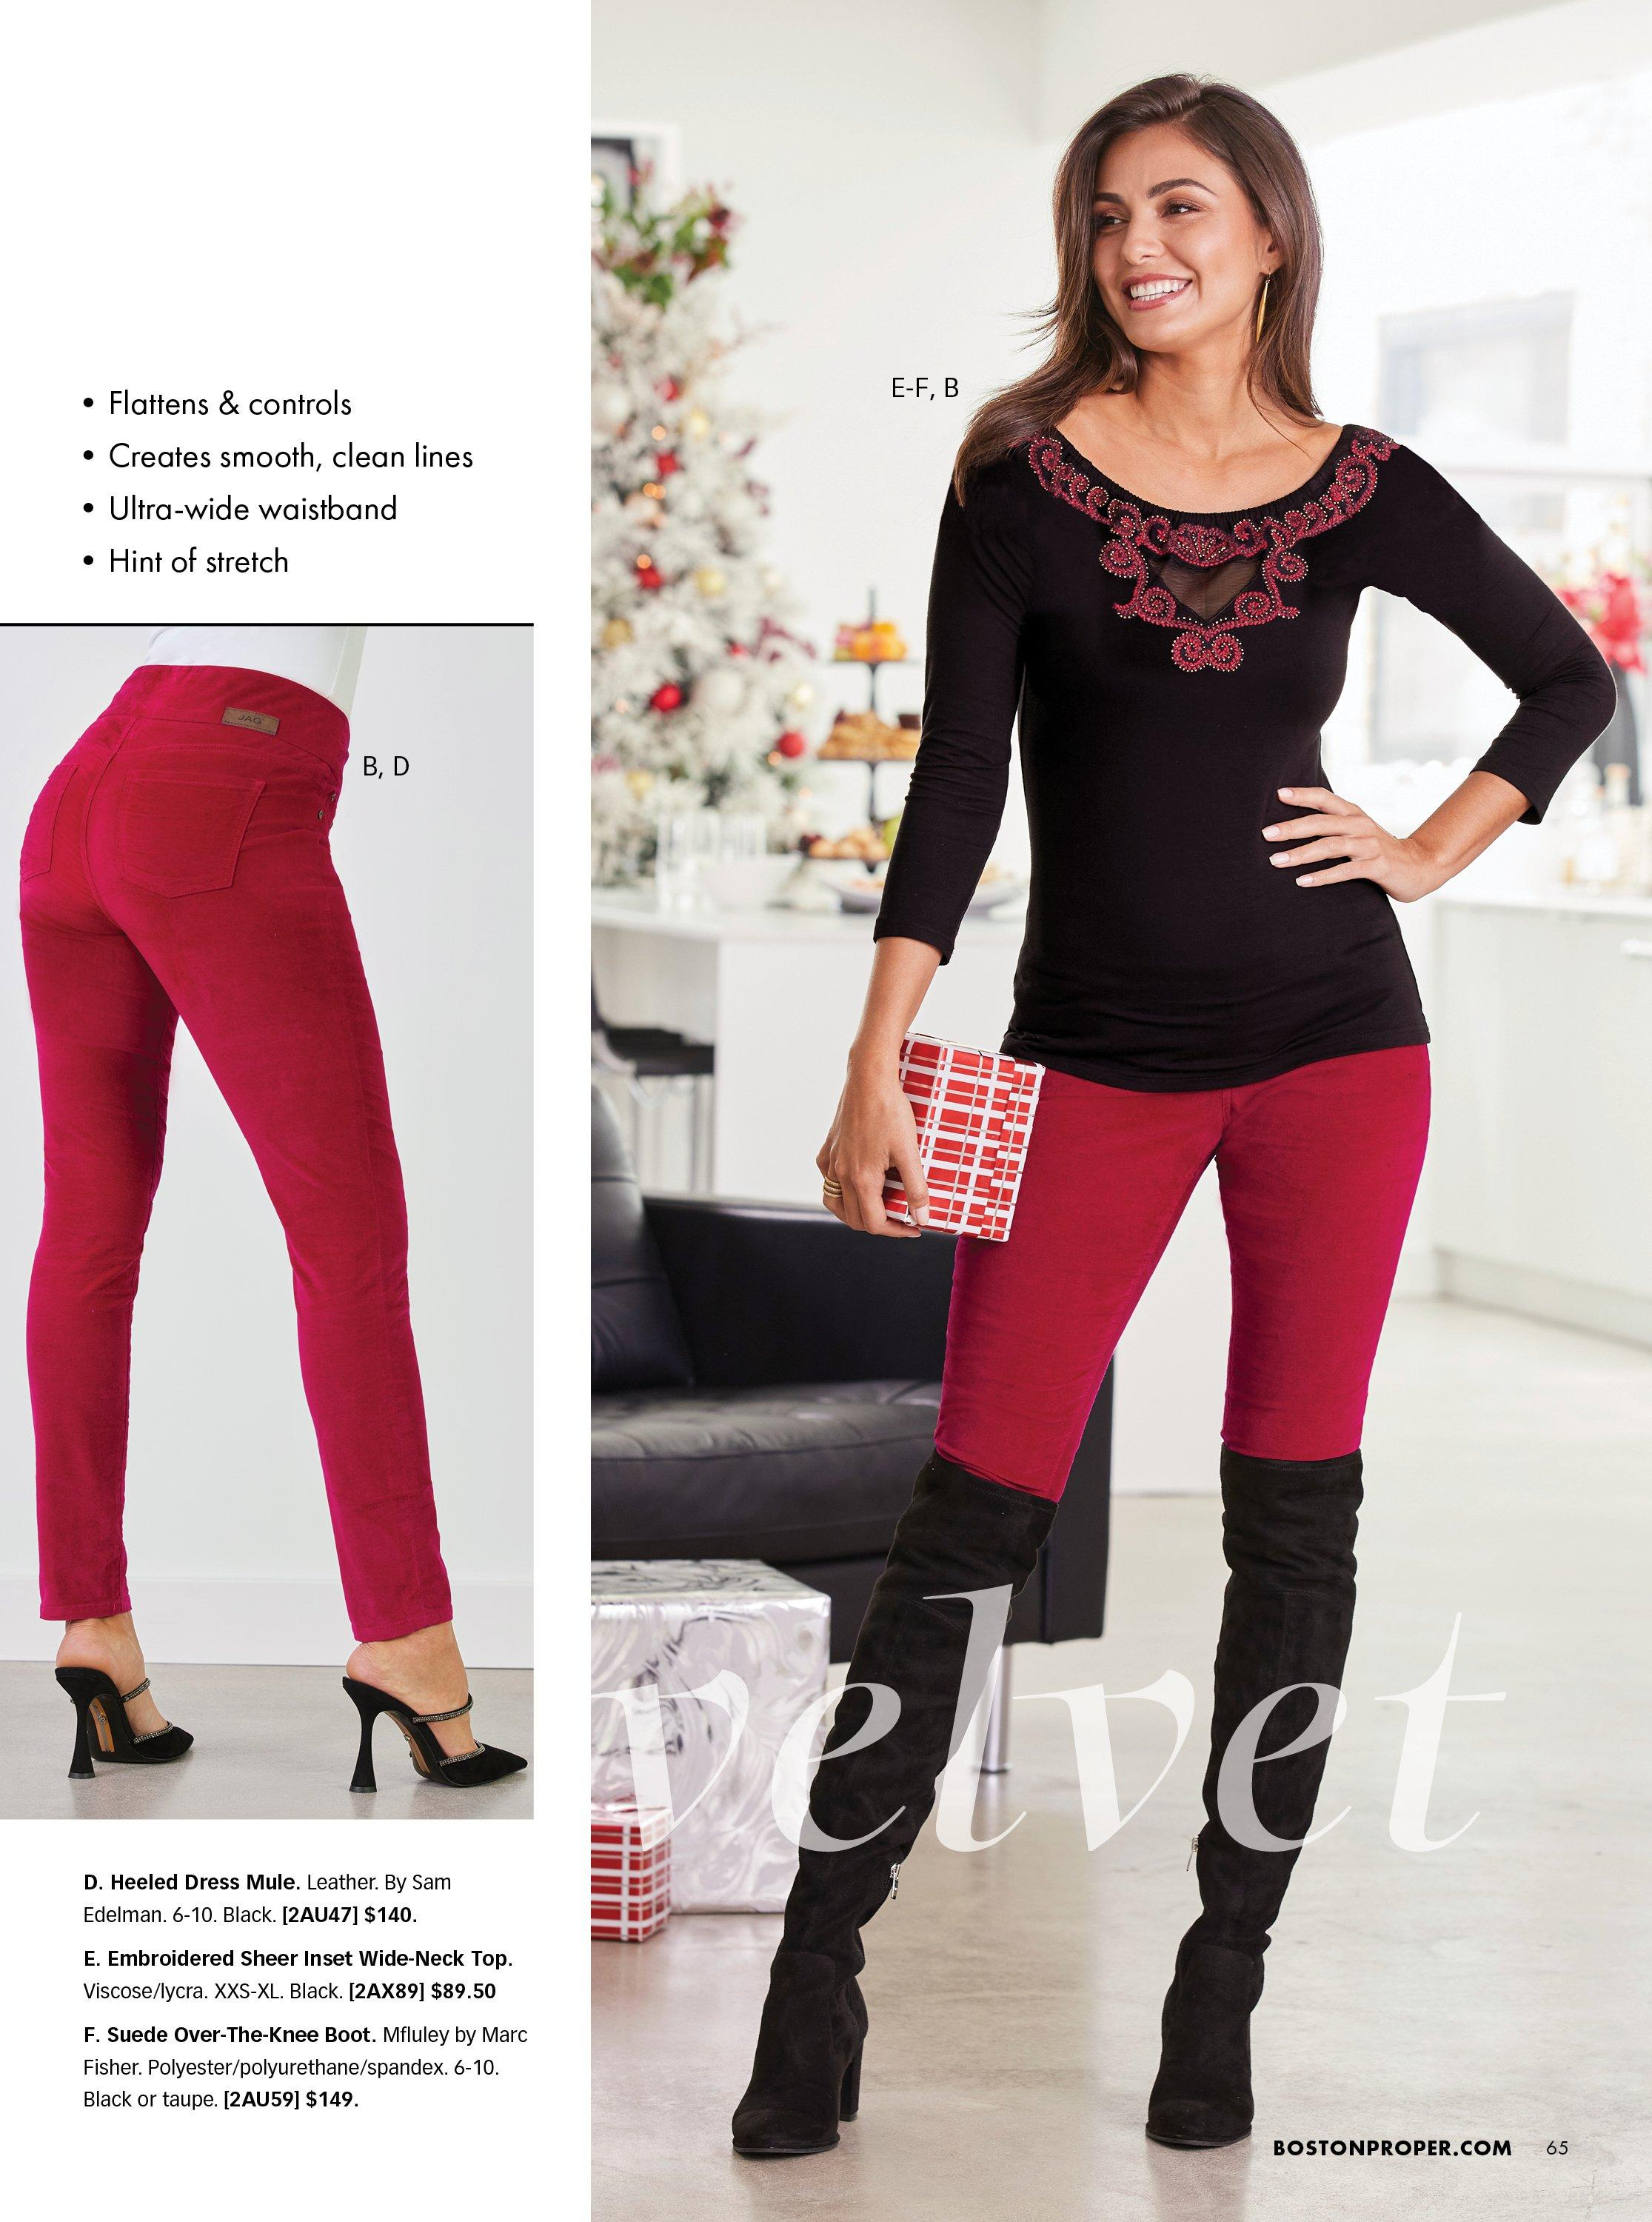 model wearing a black and red embroidered sweater, red velvet pants, and black over-the-knee boots. left panel shows the red velvet pants and black heeled mule shoes.